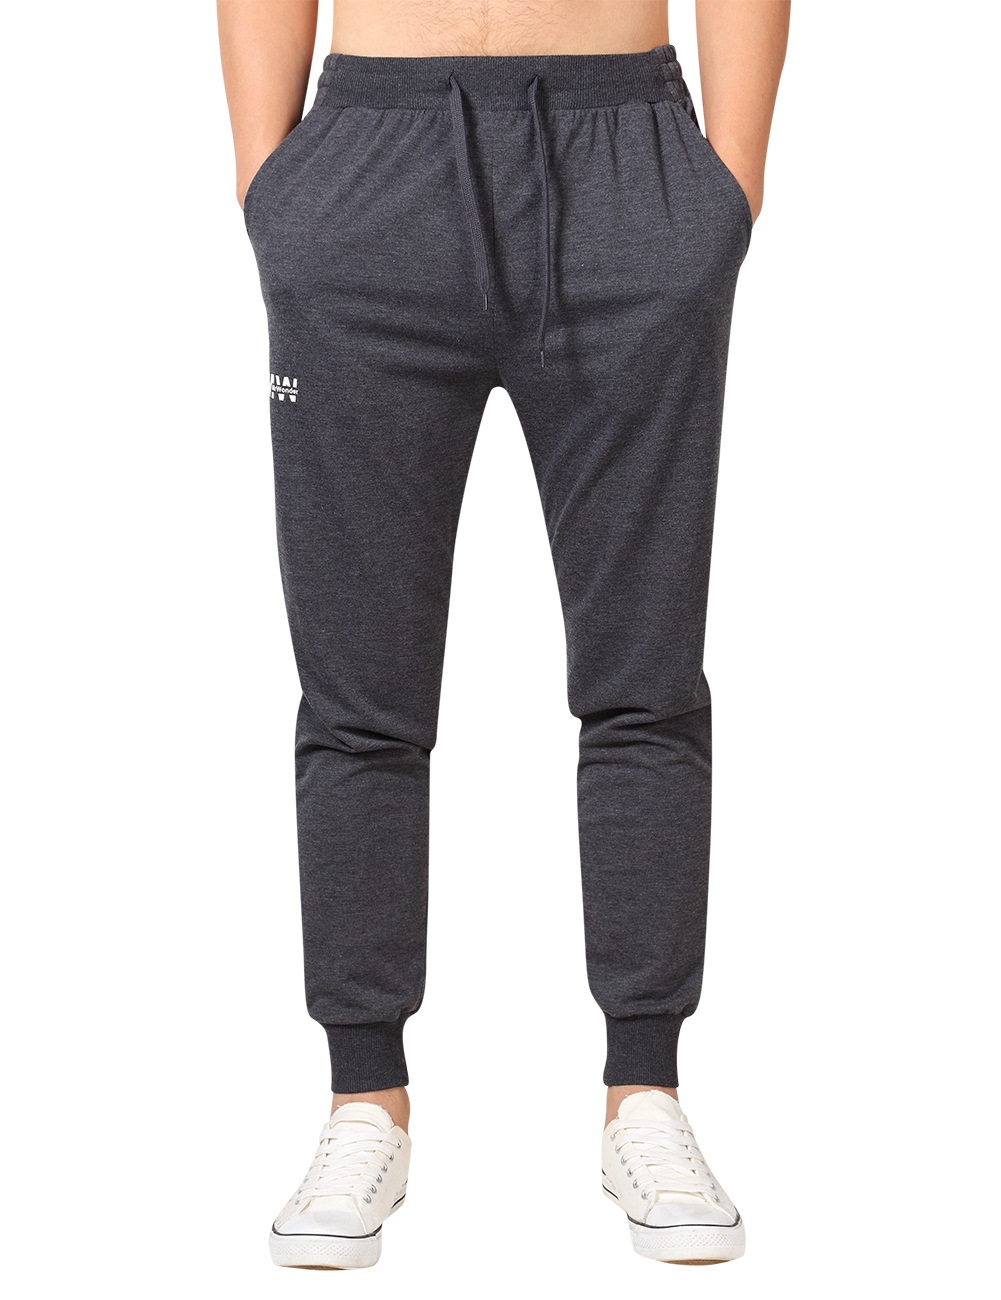 MrWonder Men's Casual Joggers Pants Fitness Running Trousers Slim Fit Bottoms Sweatpants with Pockets Dark gray_XL